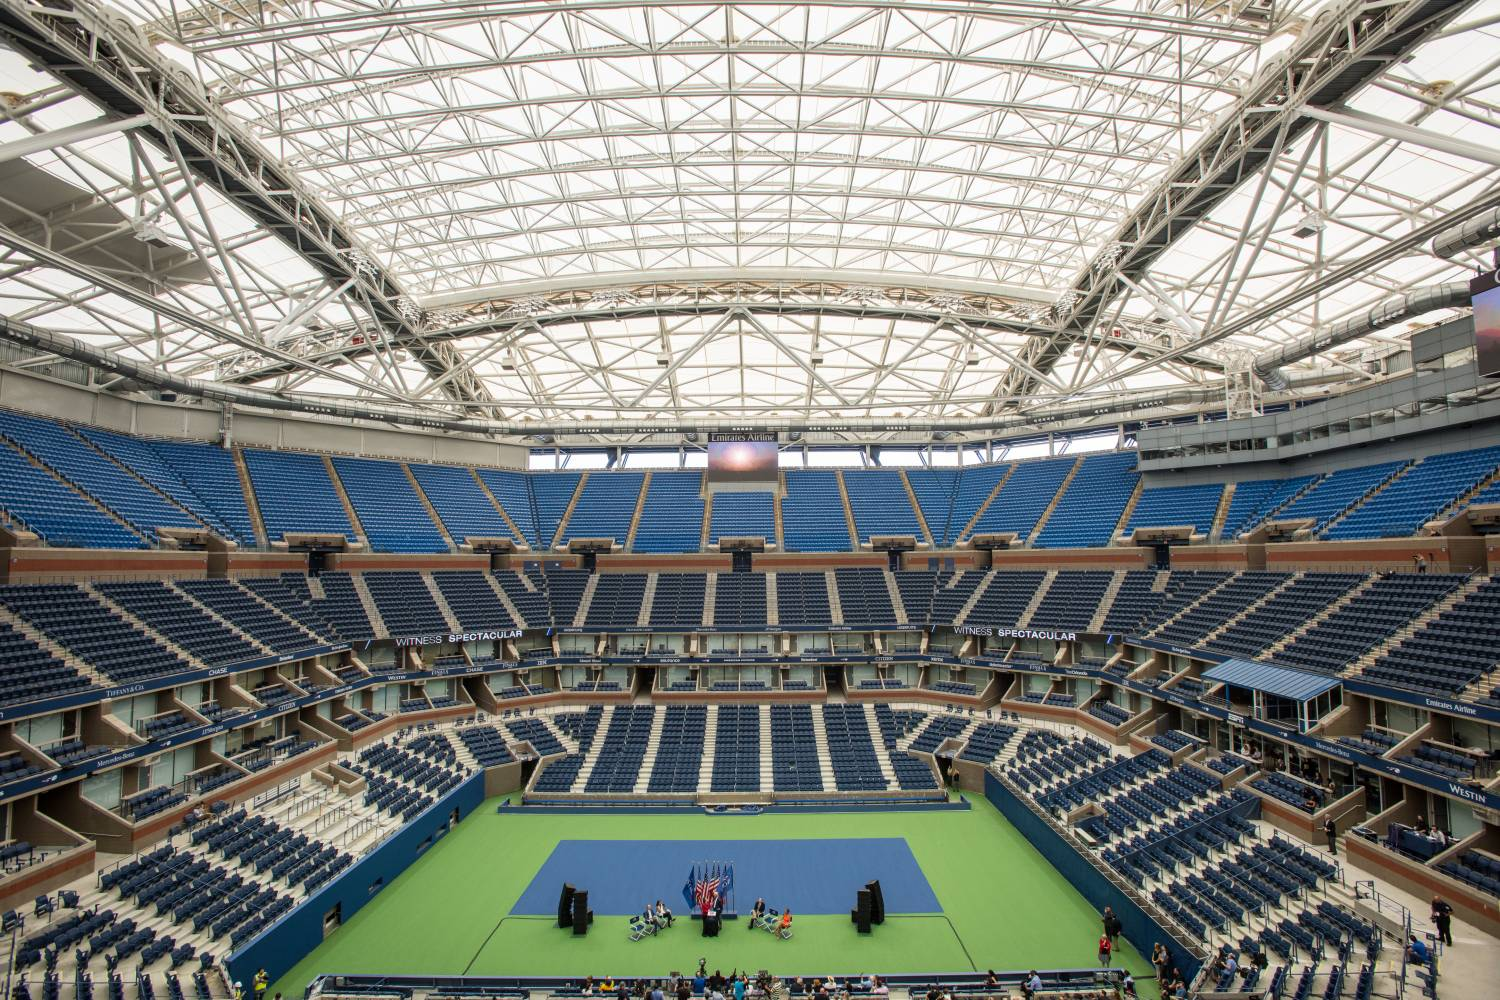 US Open Tennis Championships The Official Guide to New York City